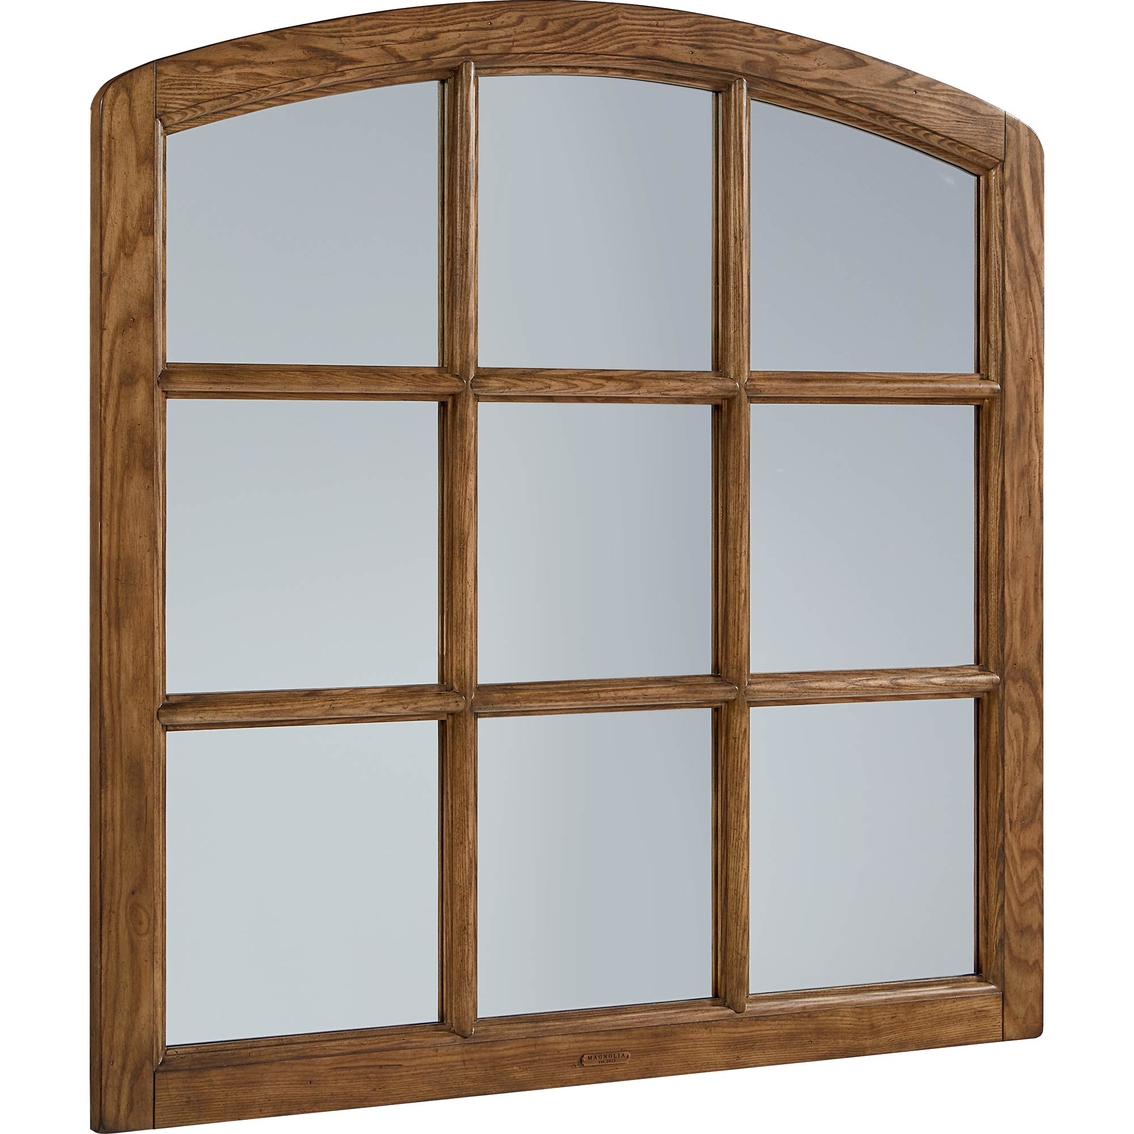 Magnolia home belgian window mirror mirrors home for Window design mirror